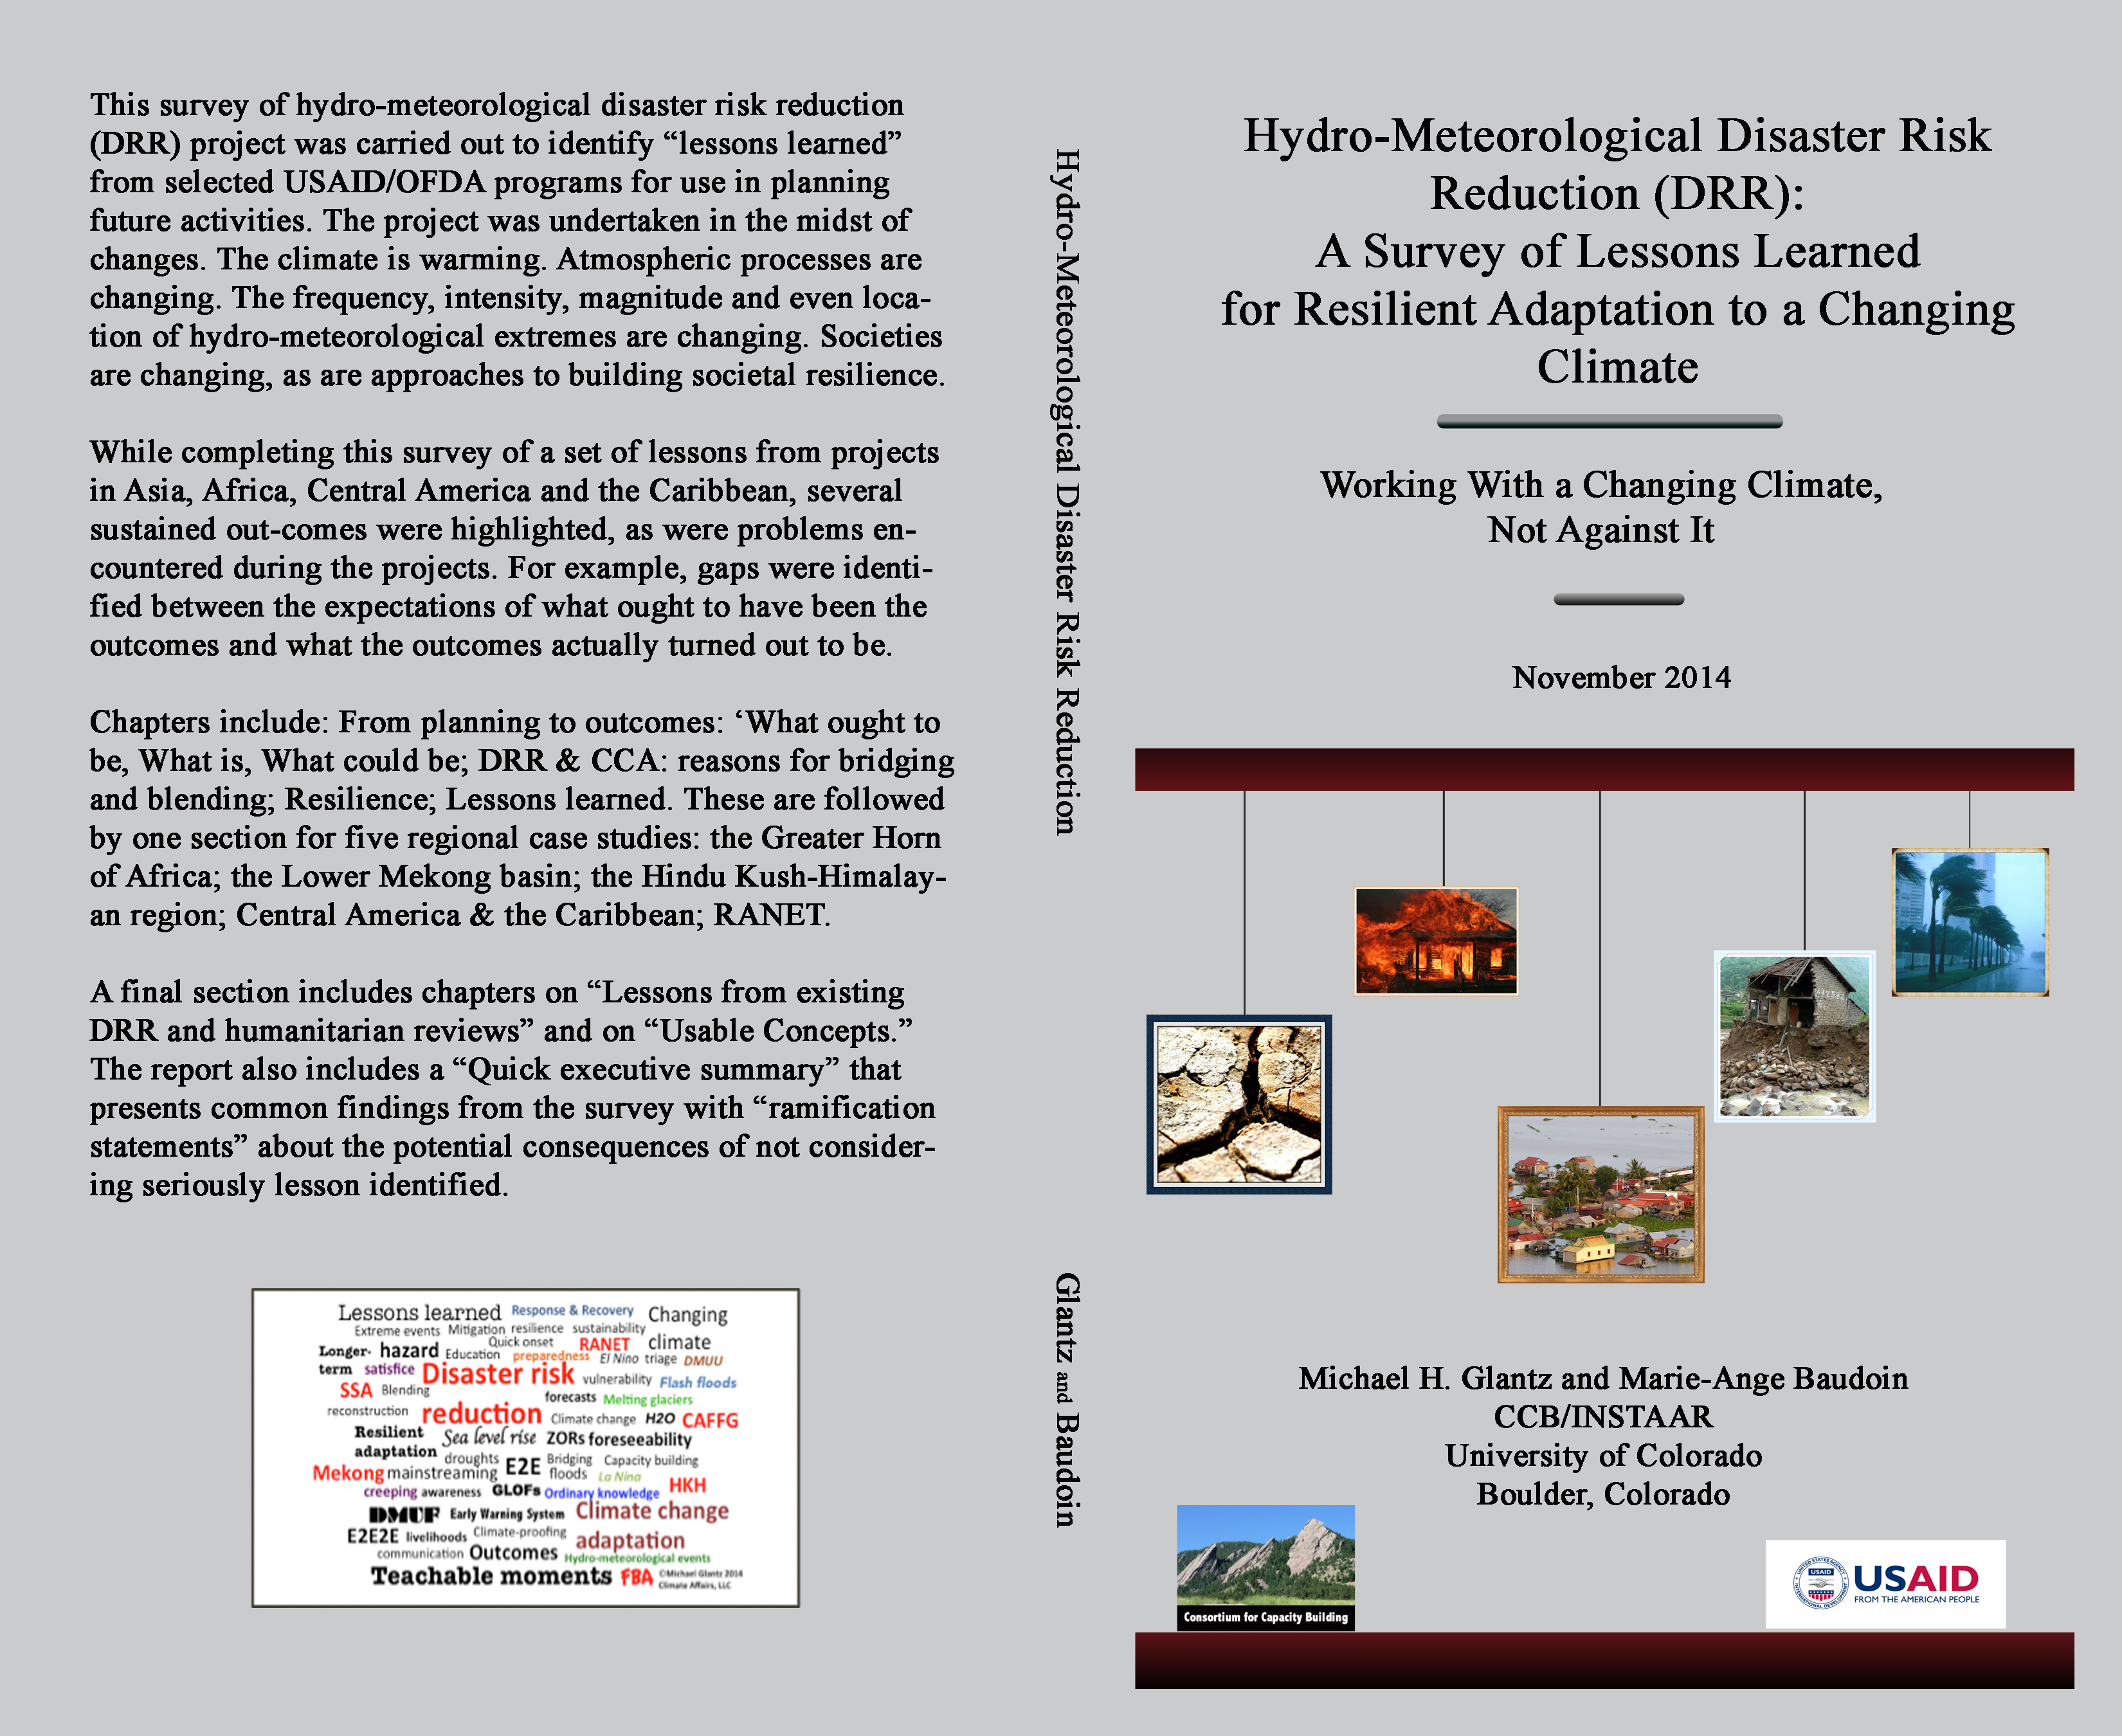 """Full report of """"Working with a Changing Climate, Not Against It : Hydro-Meteorological Disaster Risk Reduction"""""""